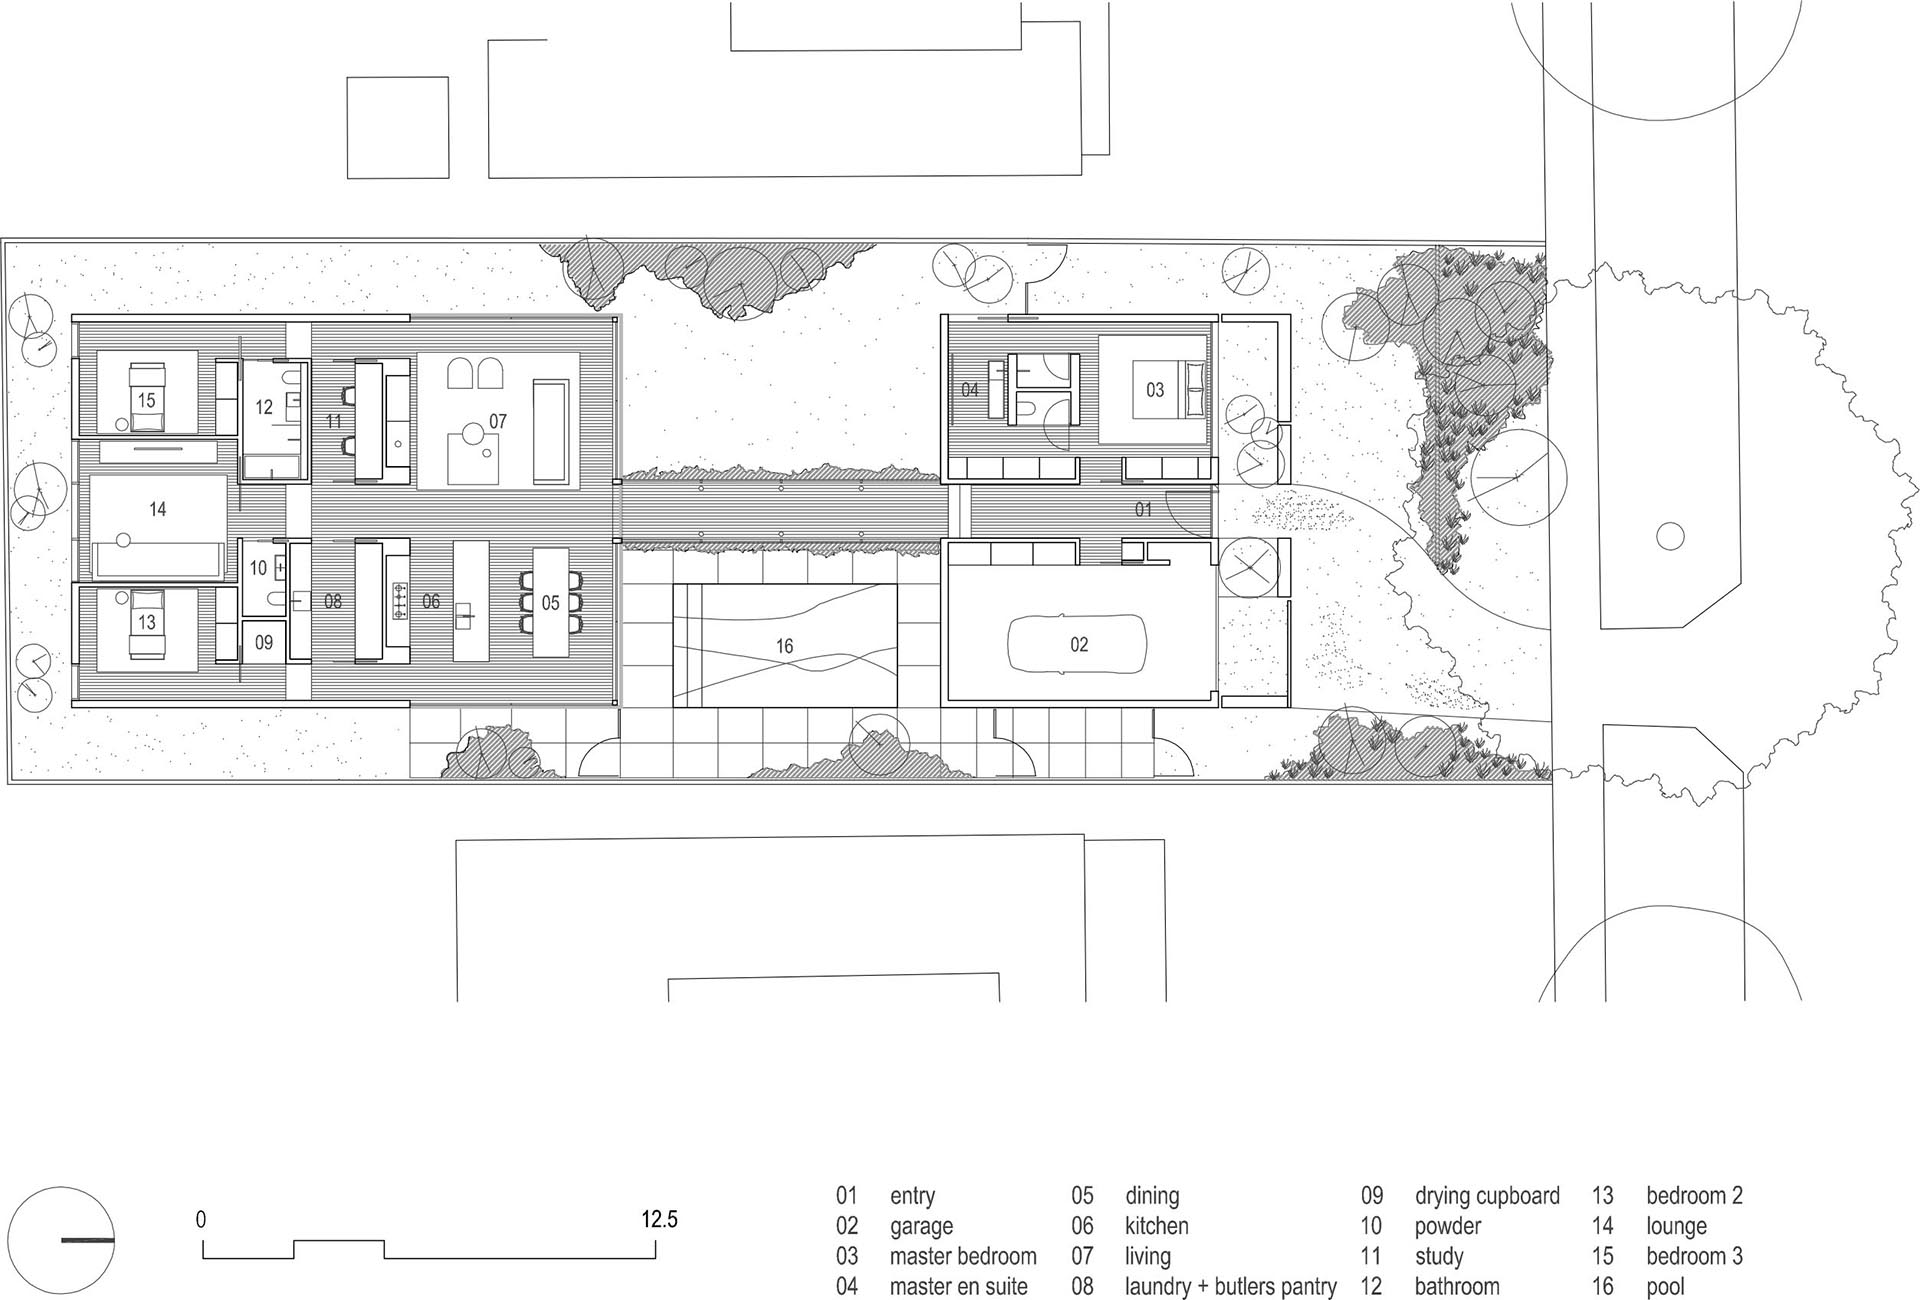 The floor plan of a modern house.